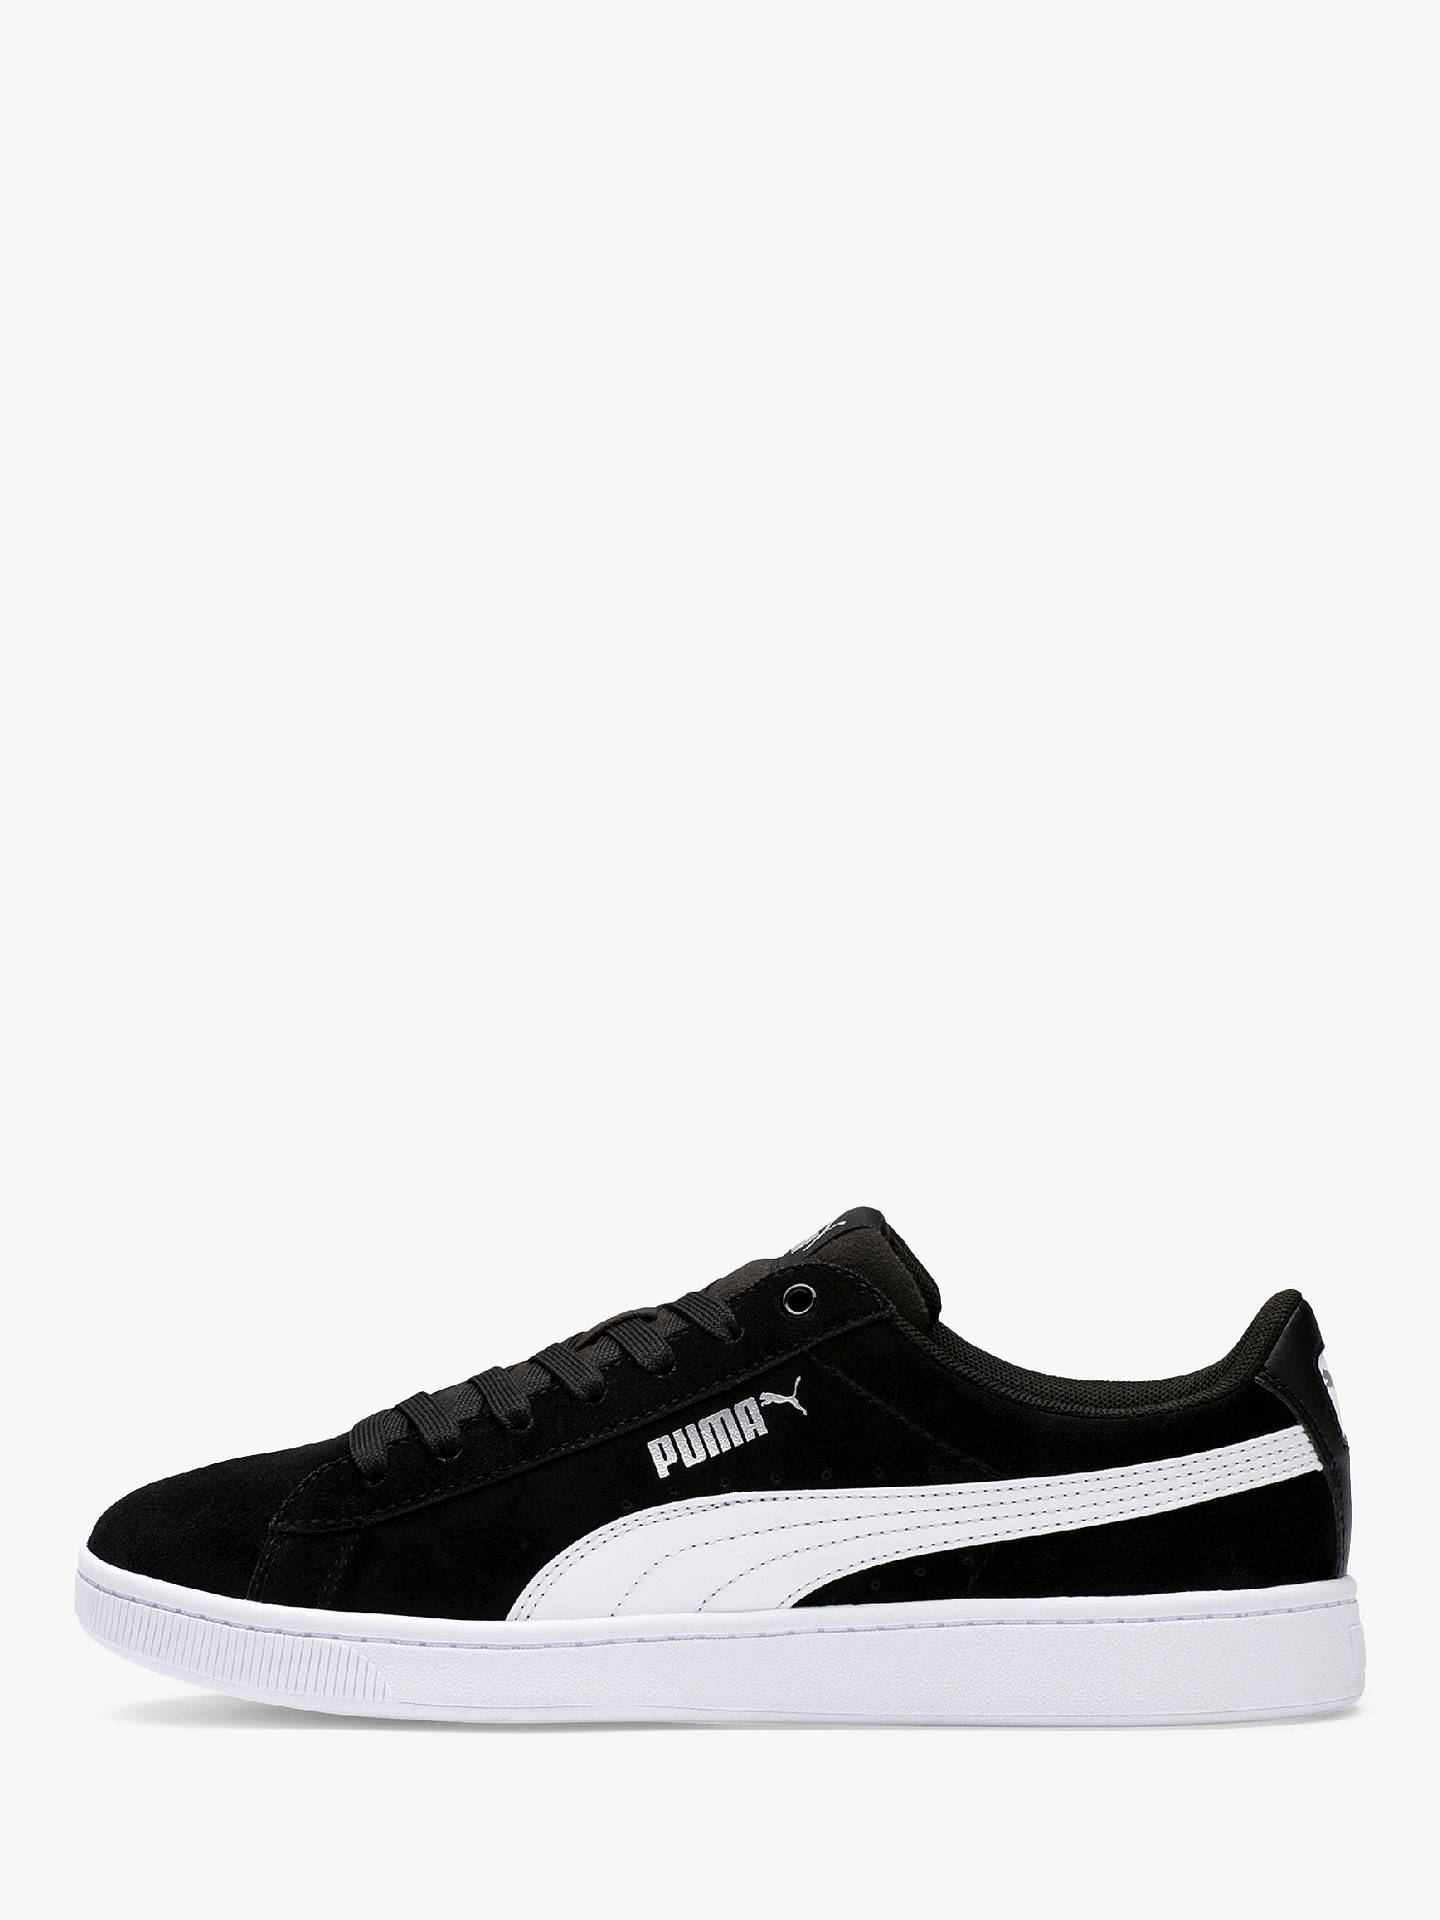 PUMA Vikky V2 Court Women's Trainers, Black at John Lewis